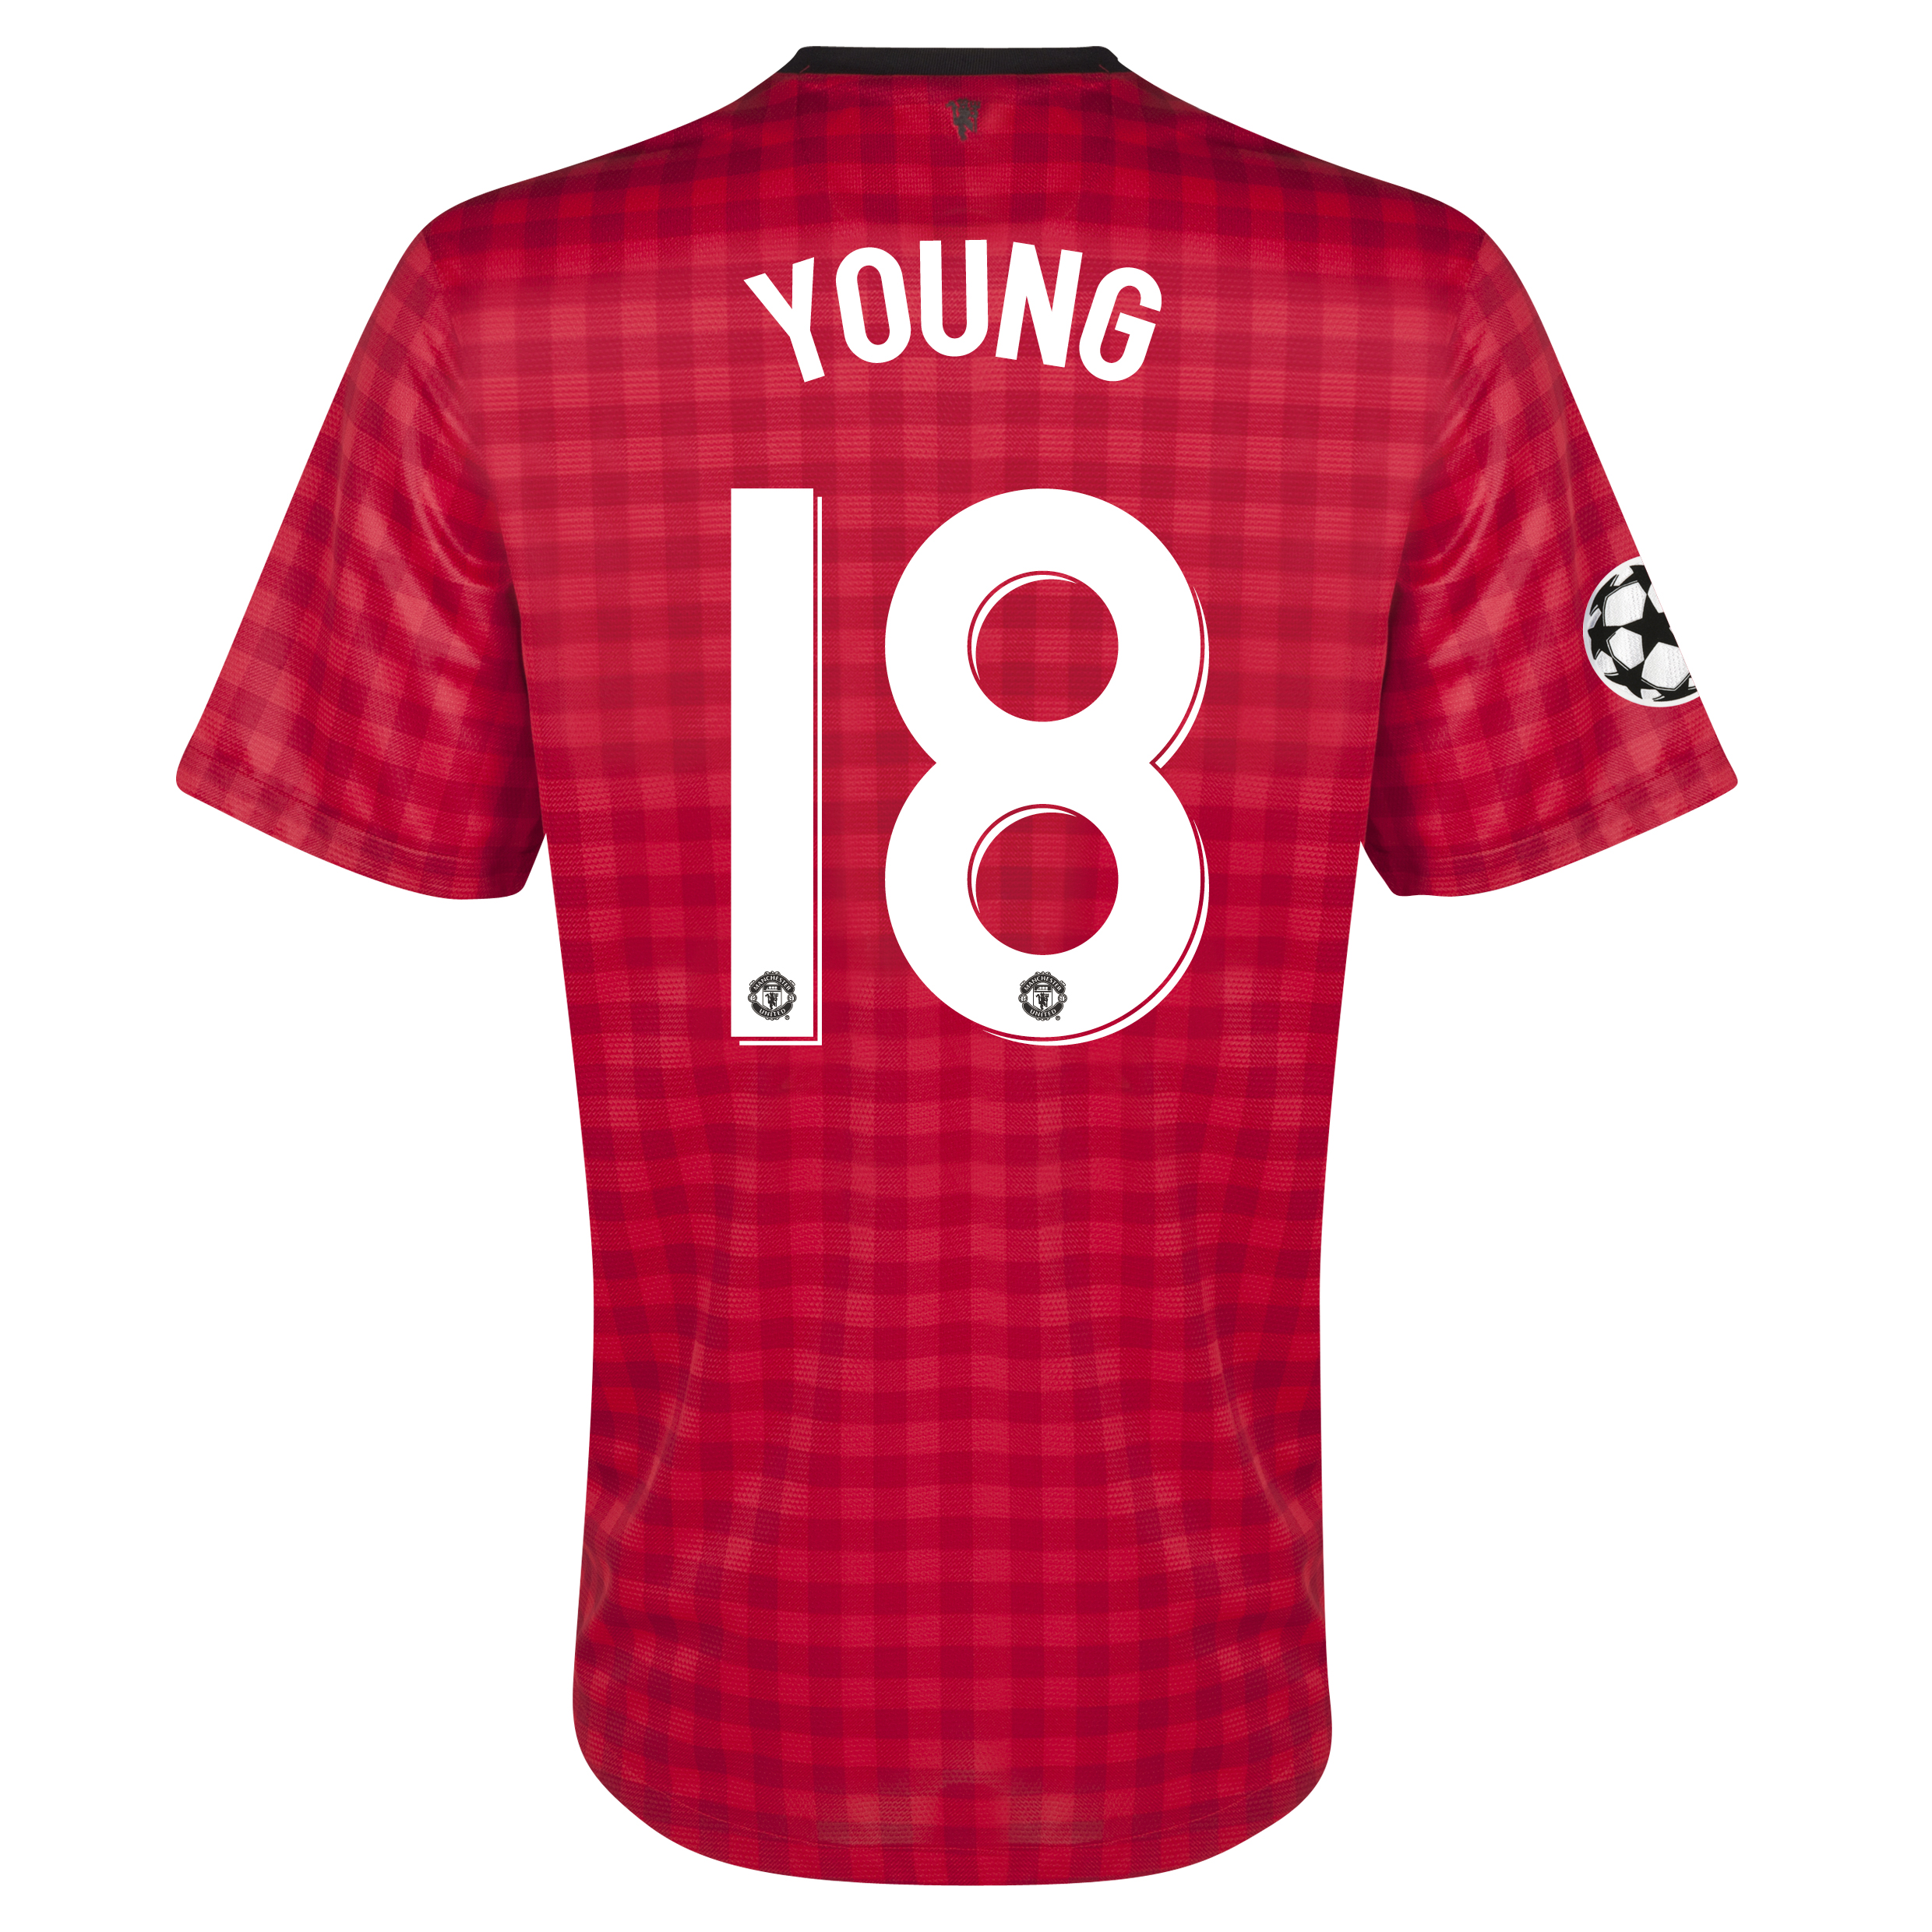 Man United UEFA Champions League Home Shirt 2012/13  - Youths with Young 18 printing